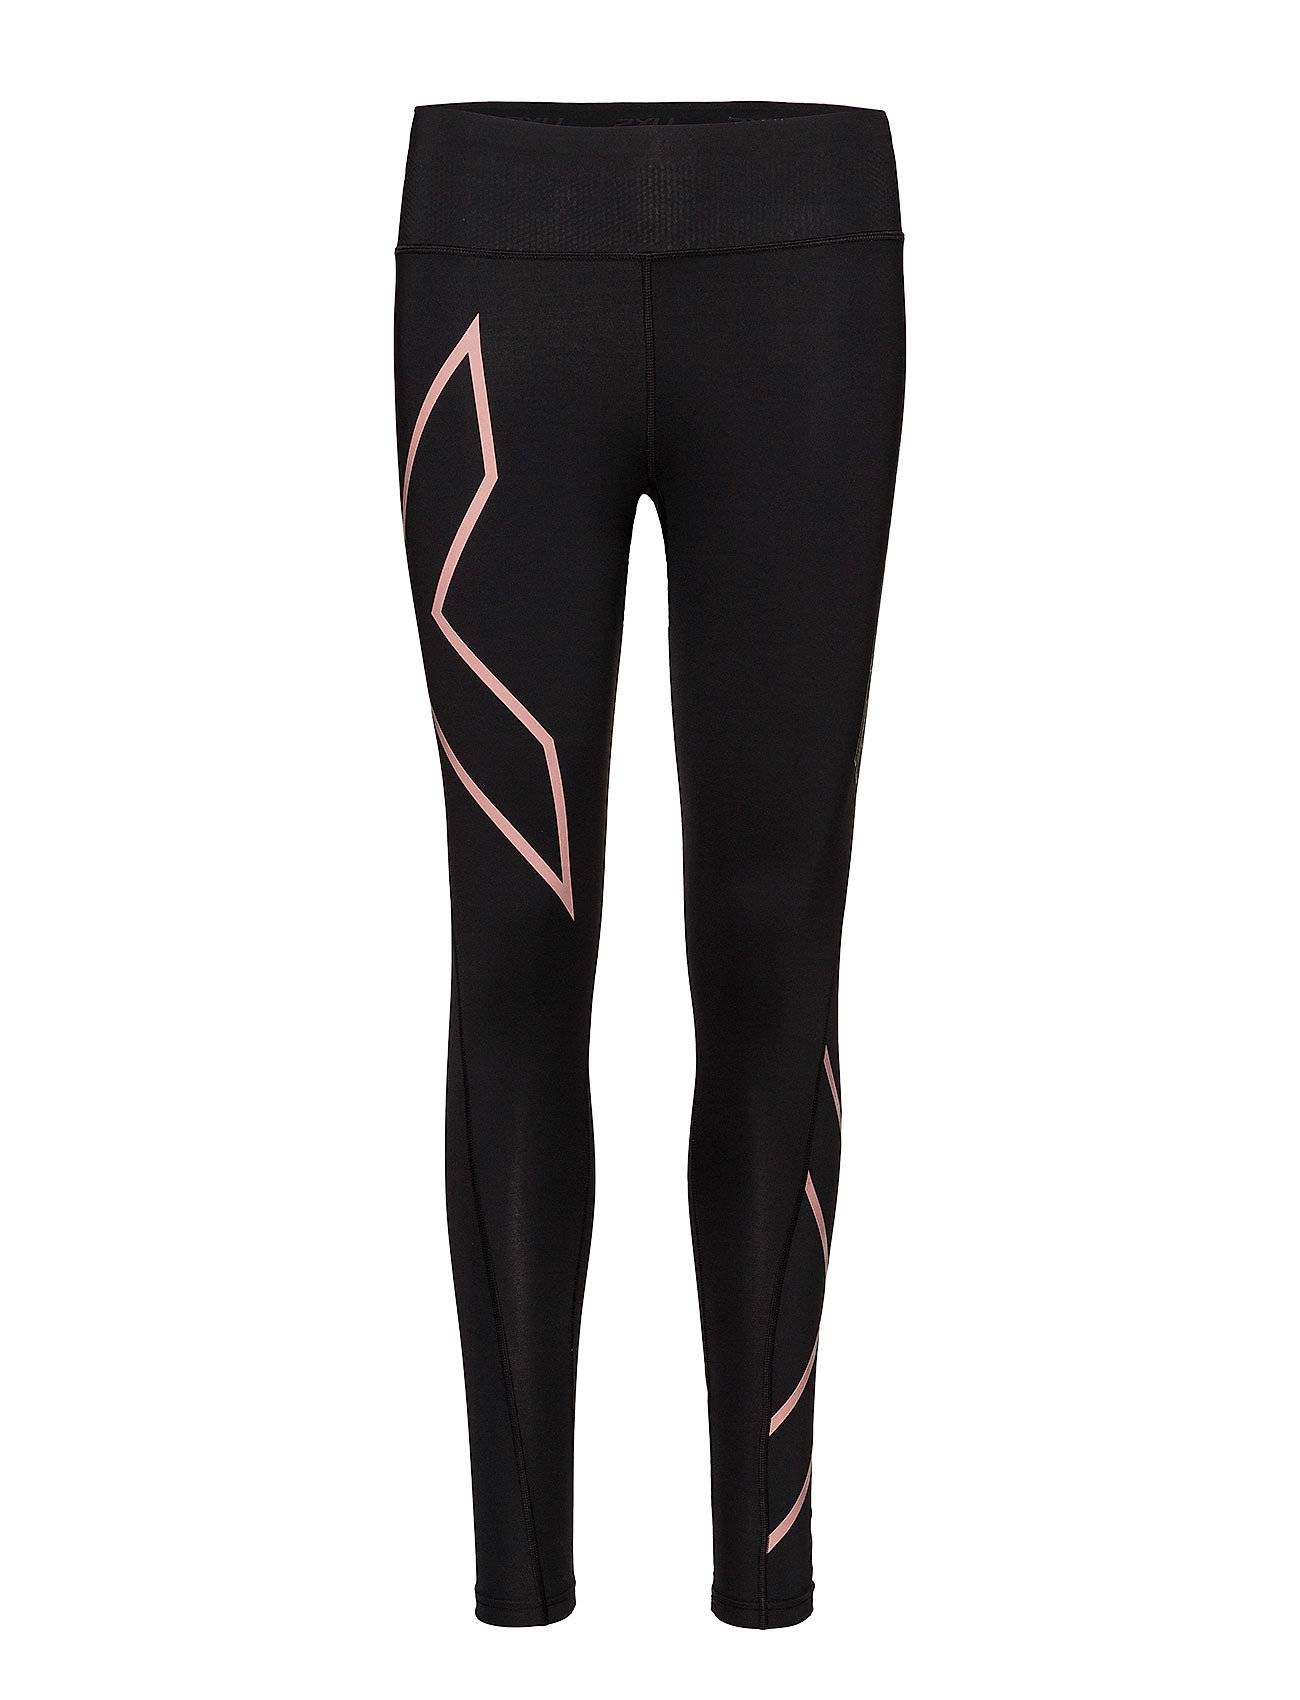 2XU Bonded Midrise Comp Tights